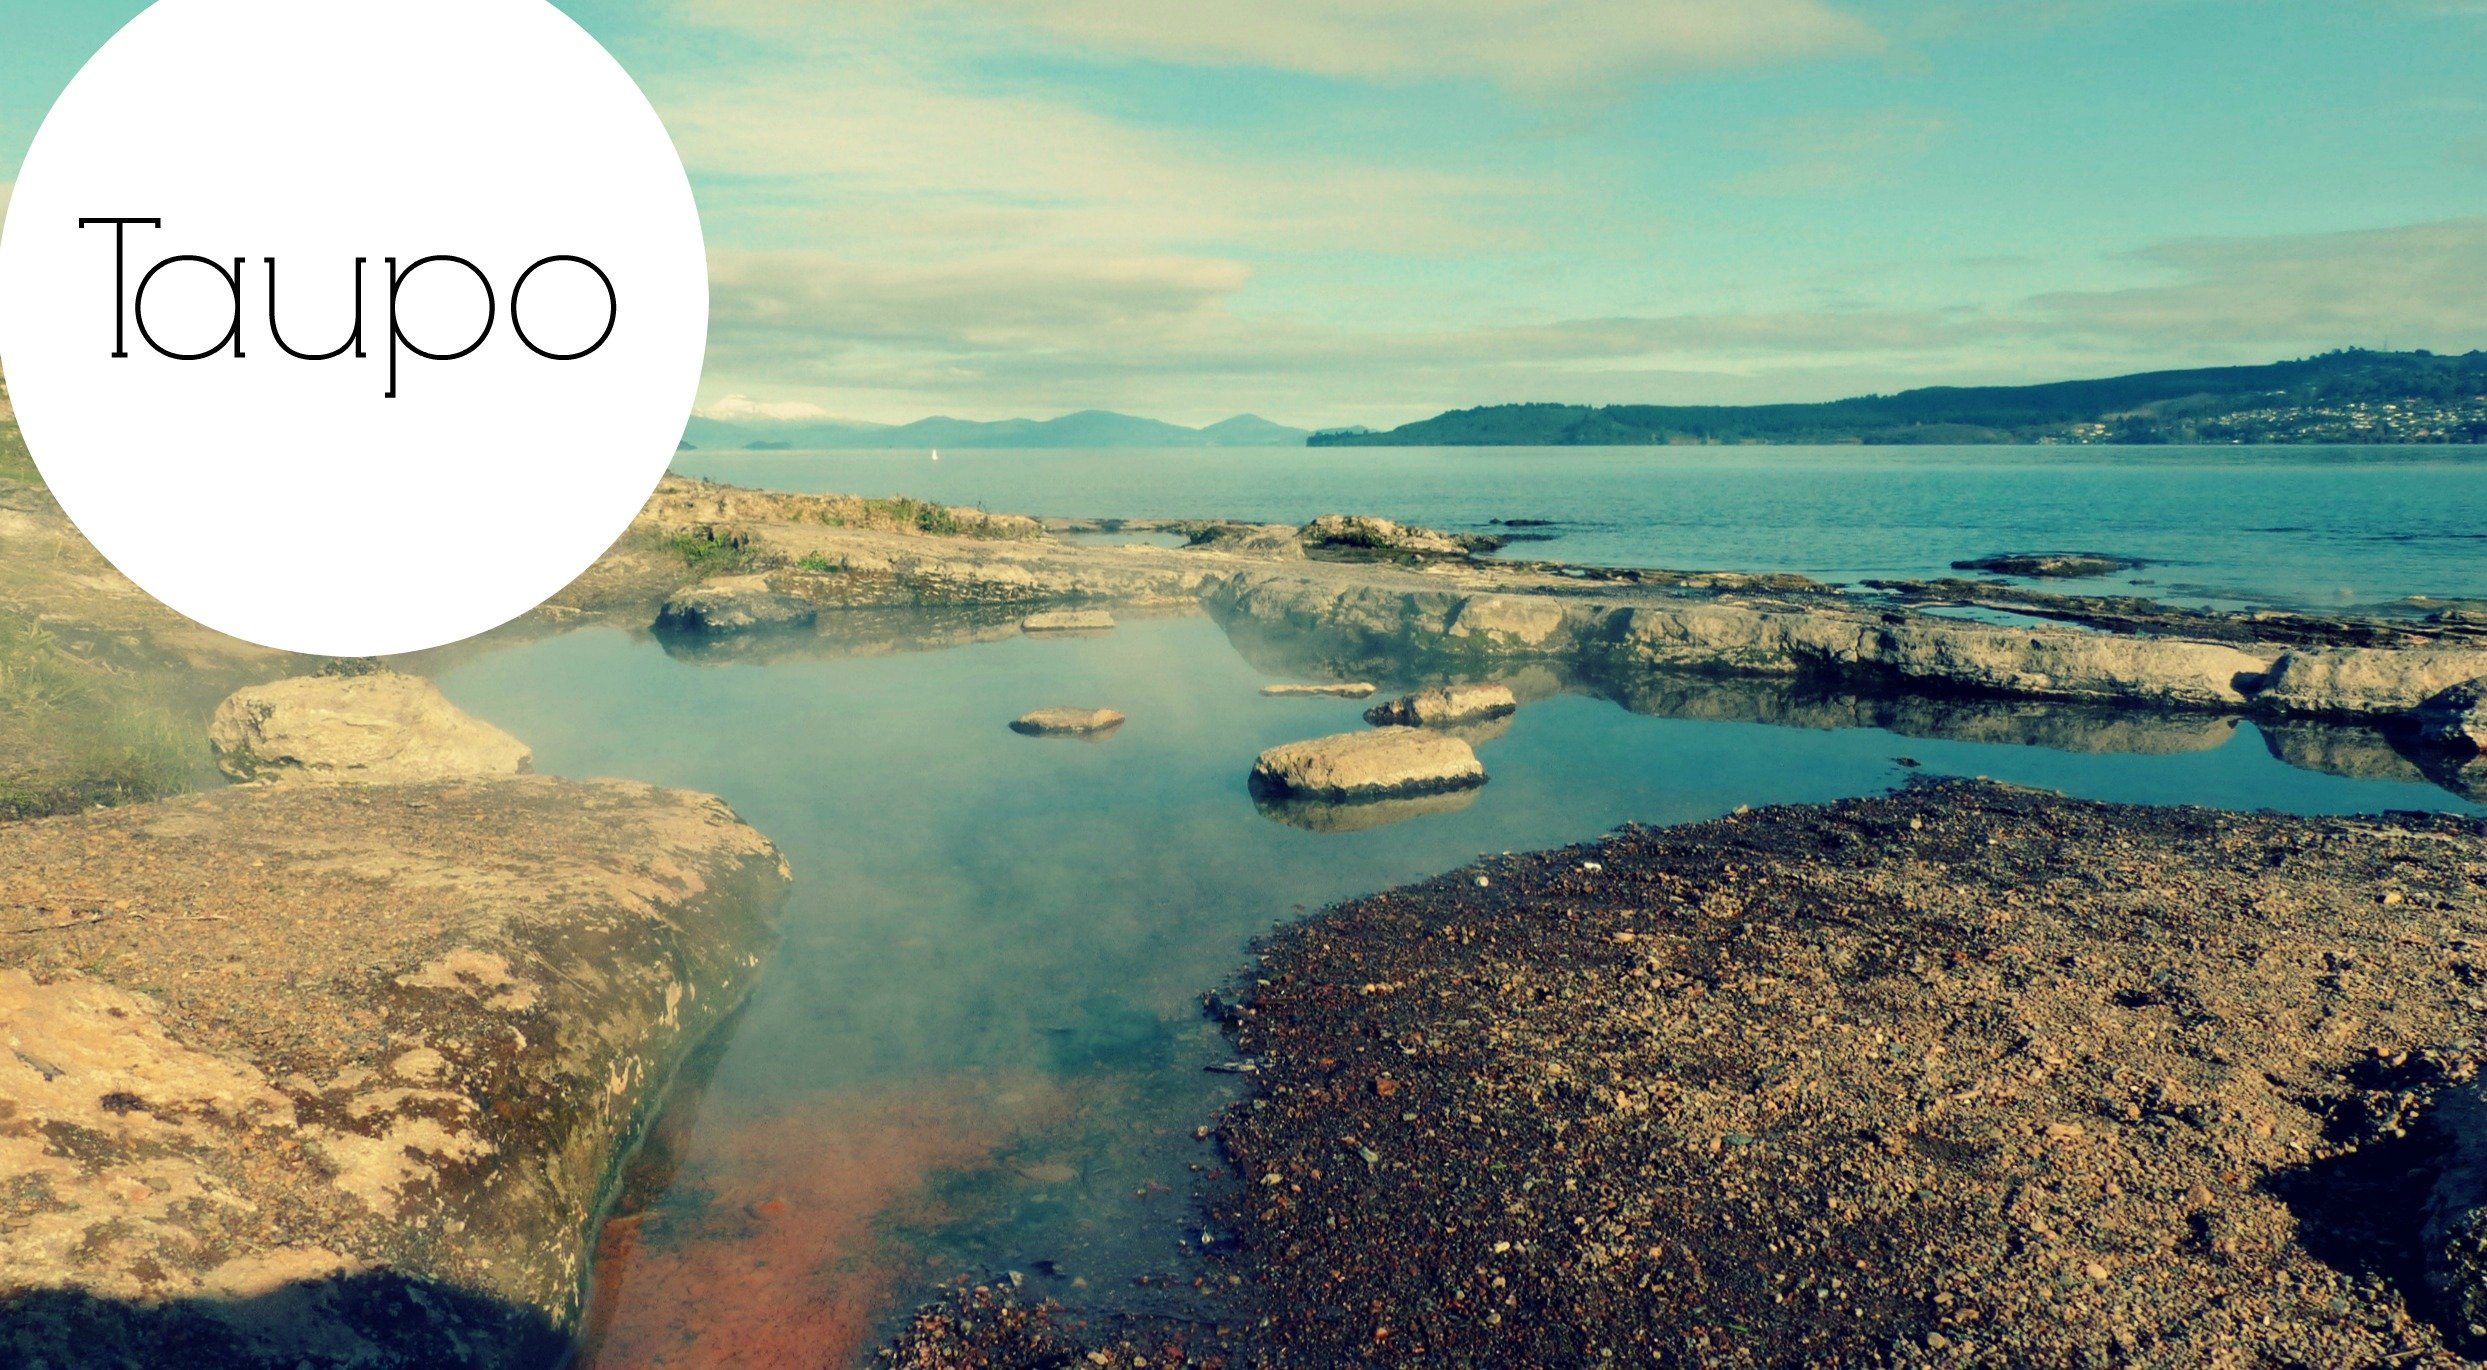 What to Visit in Taupo